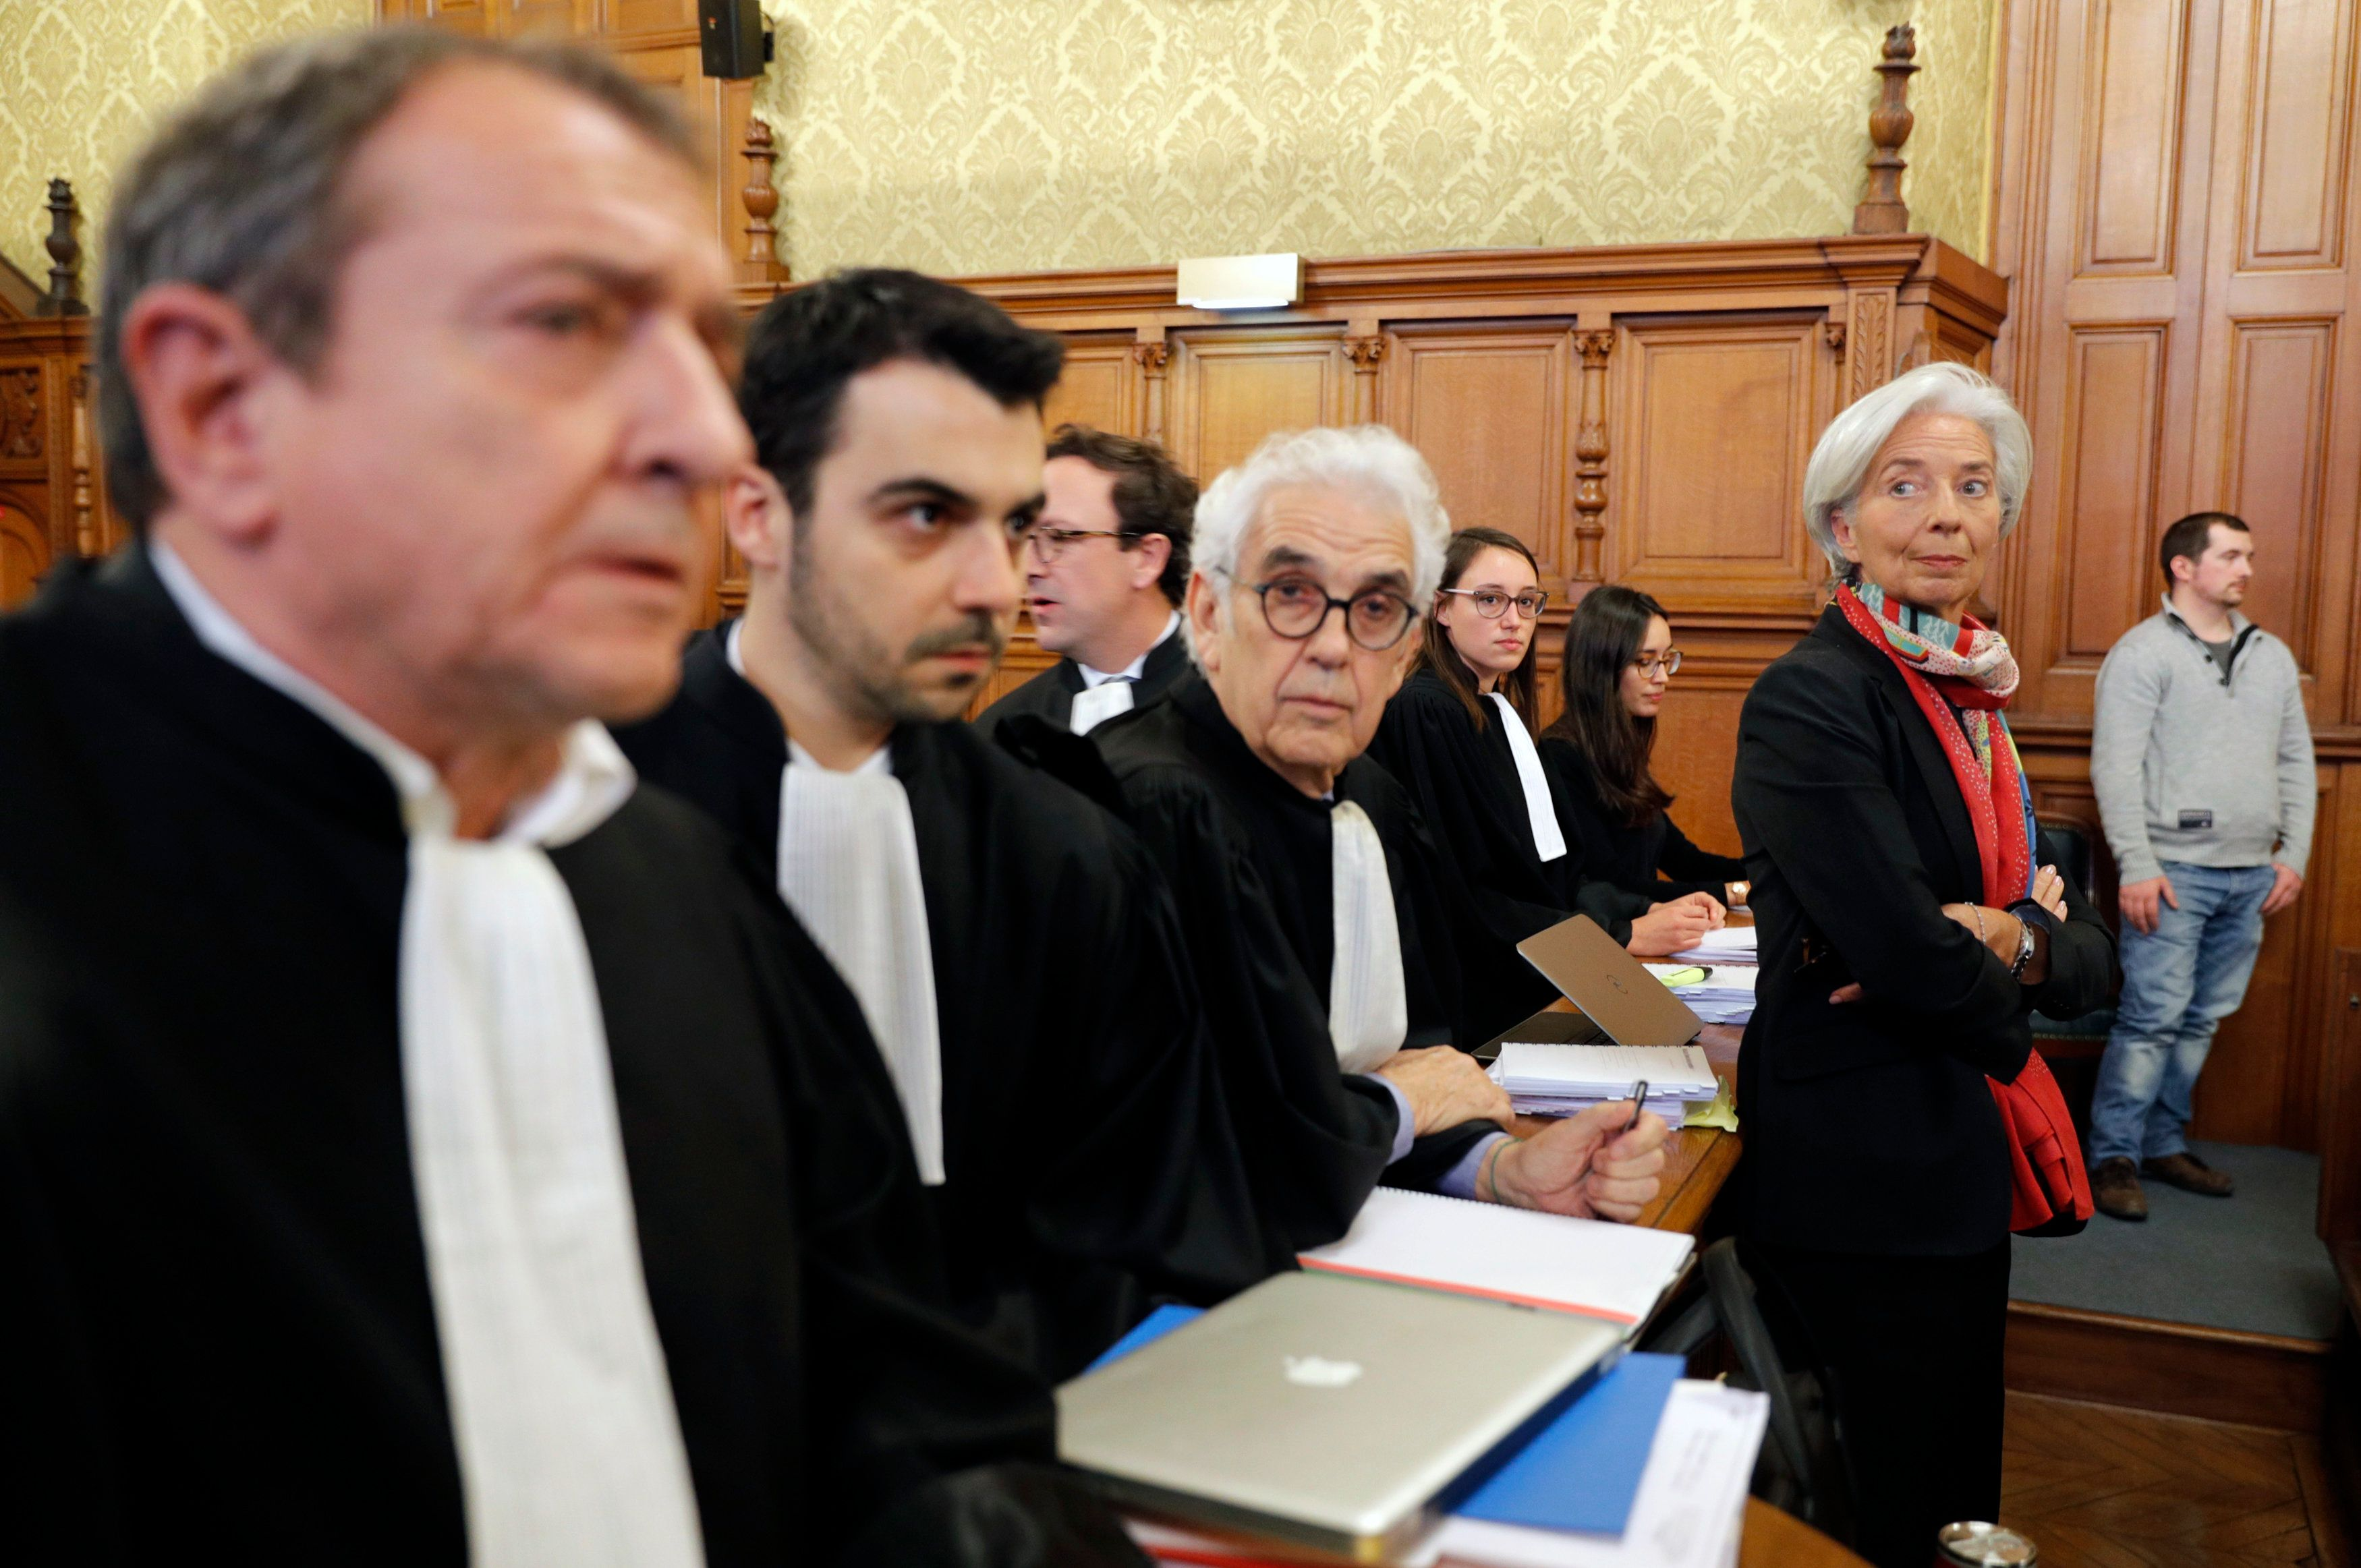 Managing Director of the International Monetary Fund (IMF) Christine Lagarde (R) stands with her lawyers before the start of her trial about a state payout in 2008 to a French businessman, at the courts in Paris, France, December 12, 2016.   REUTERS/Philippe Wojazer